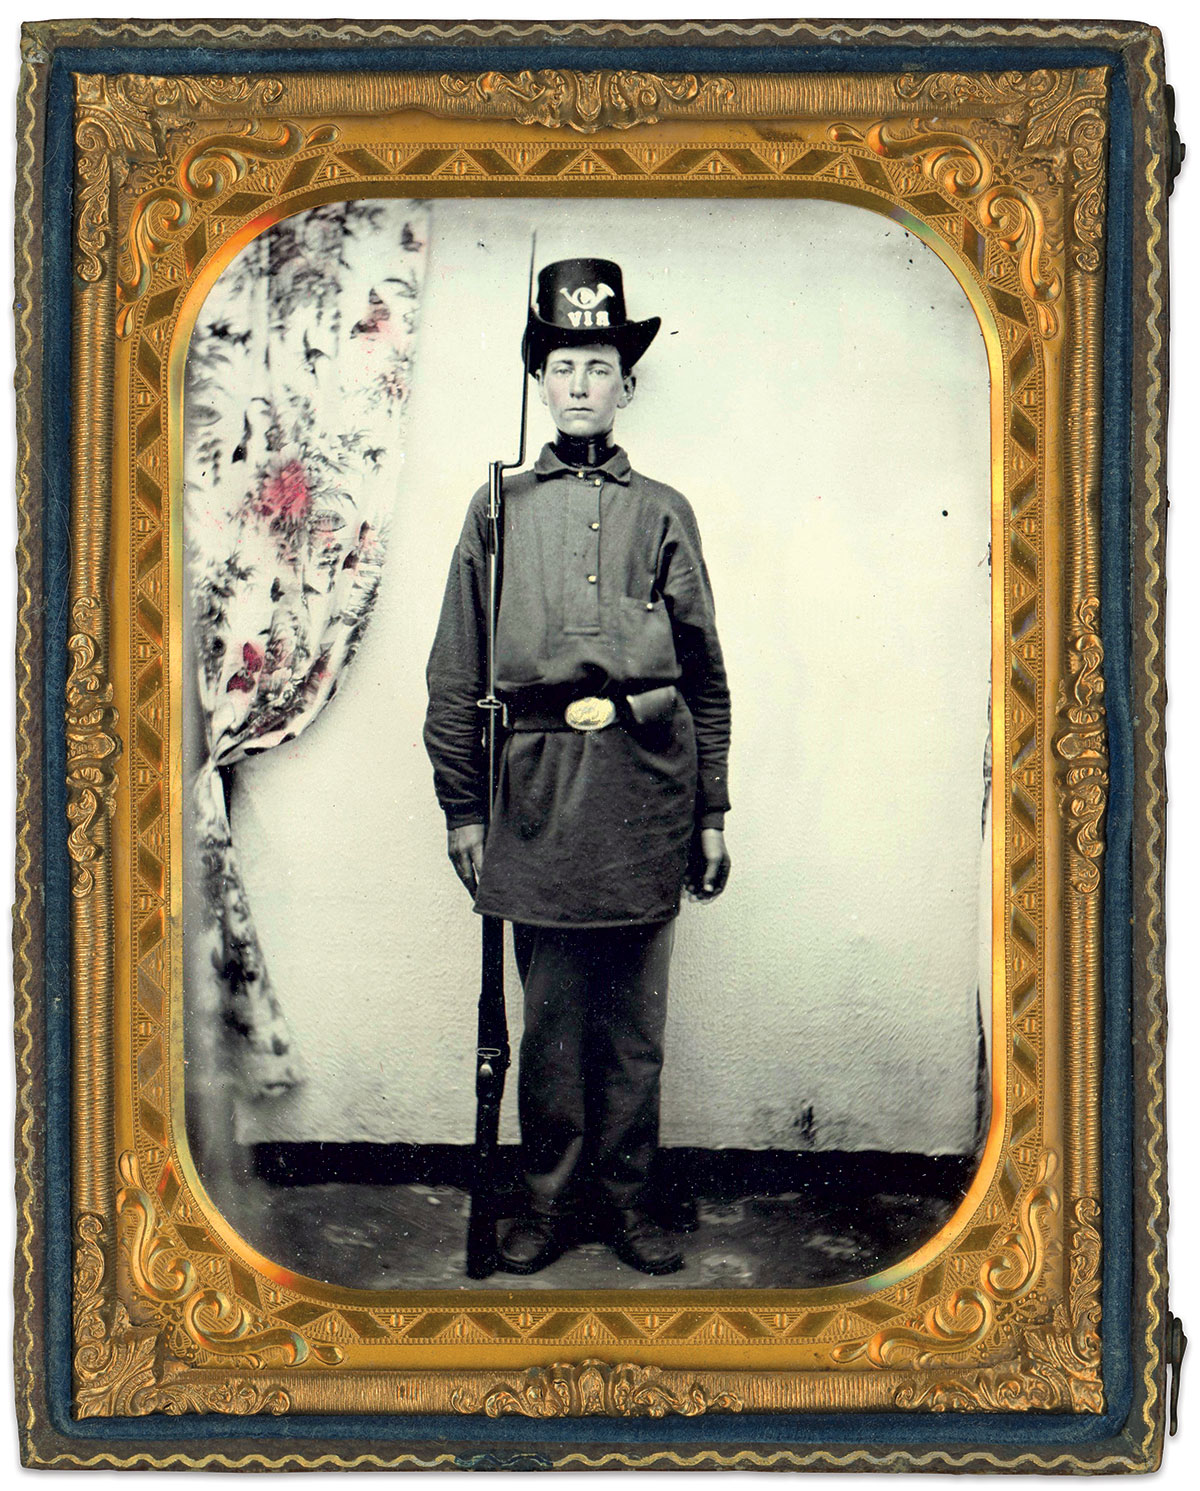 David A. Sheldon is pictured as a private in Company B of the 4th Rhode Island Infantry. He served in this regiment from 1861 to 1864, when he transferred to the 7th Rhode Island Infantry. Quarter-plate ruby ambrotype by an anonymous photographer. Dan Binder Collection.